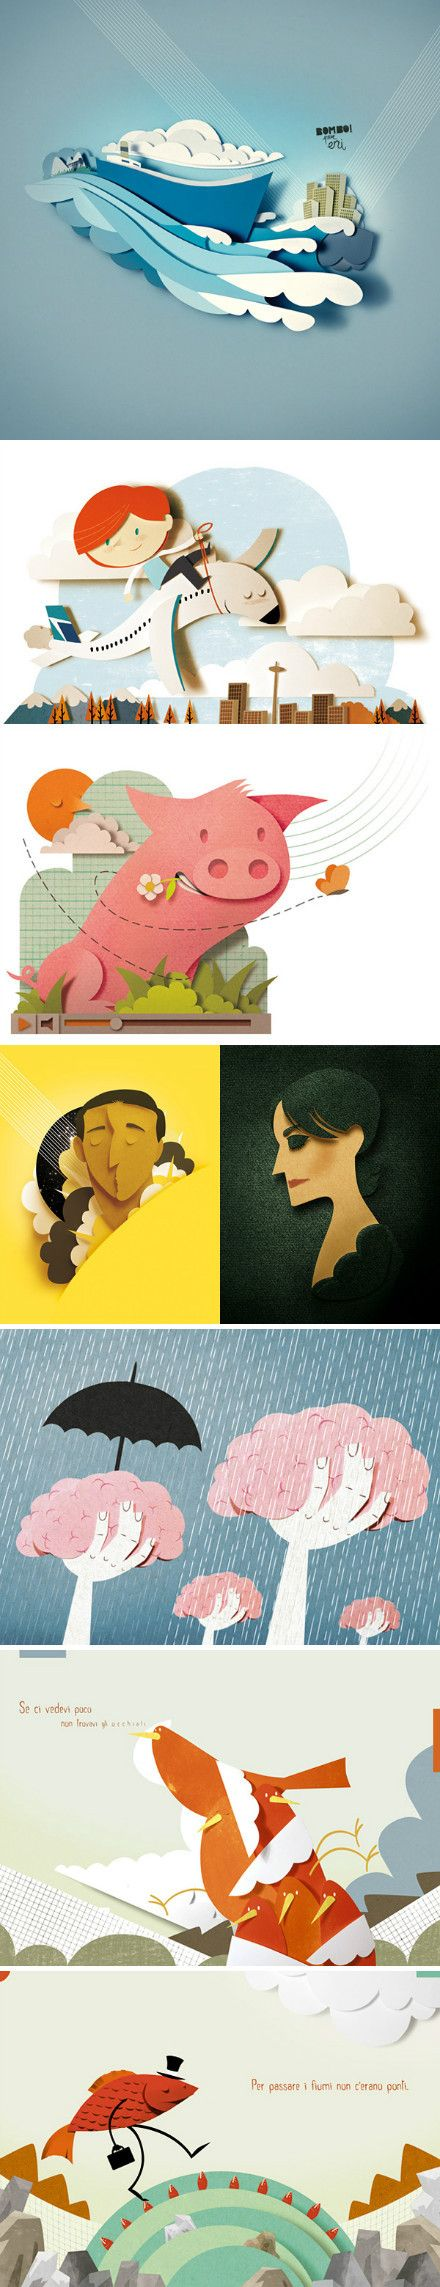 8 good examples of paper sculpture - so expressive -